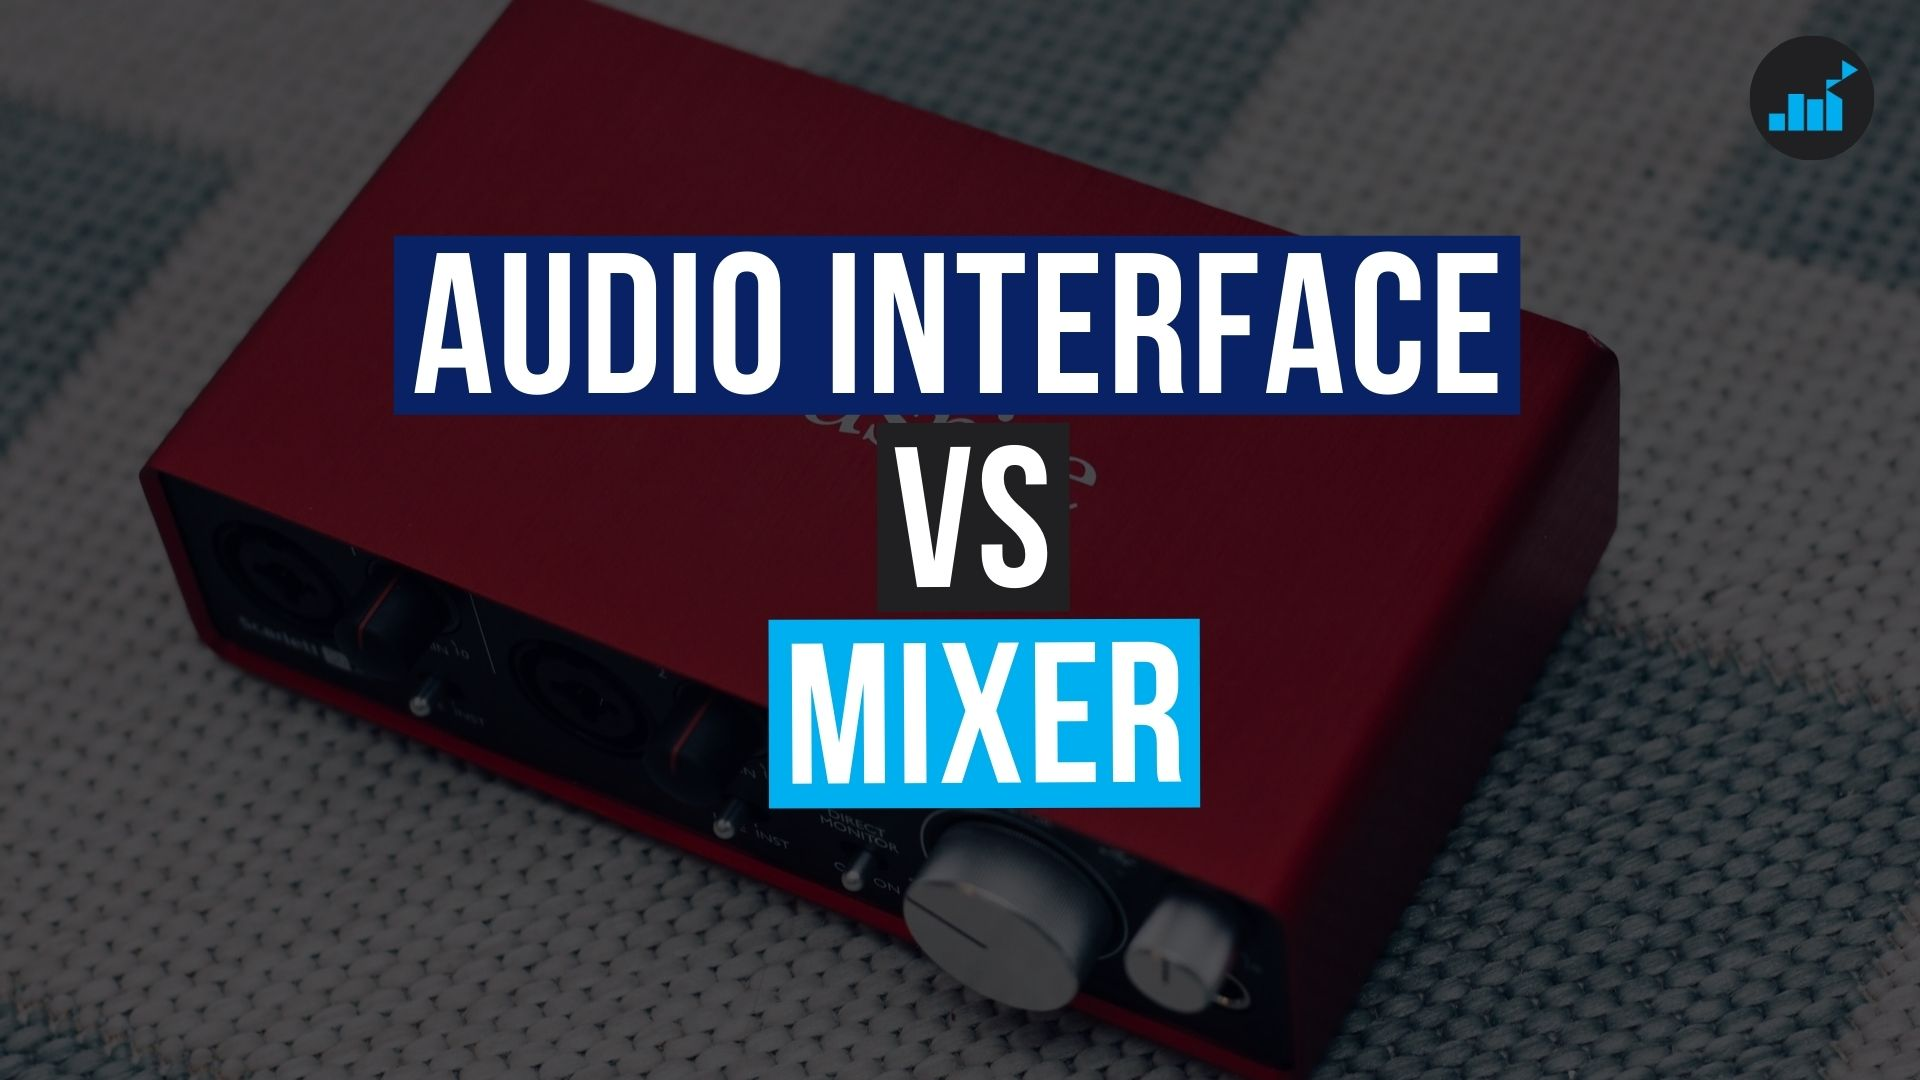 audio interface vs mixer for podcasting thumbnail